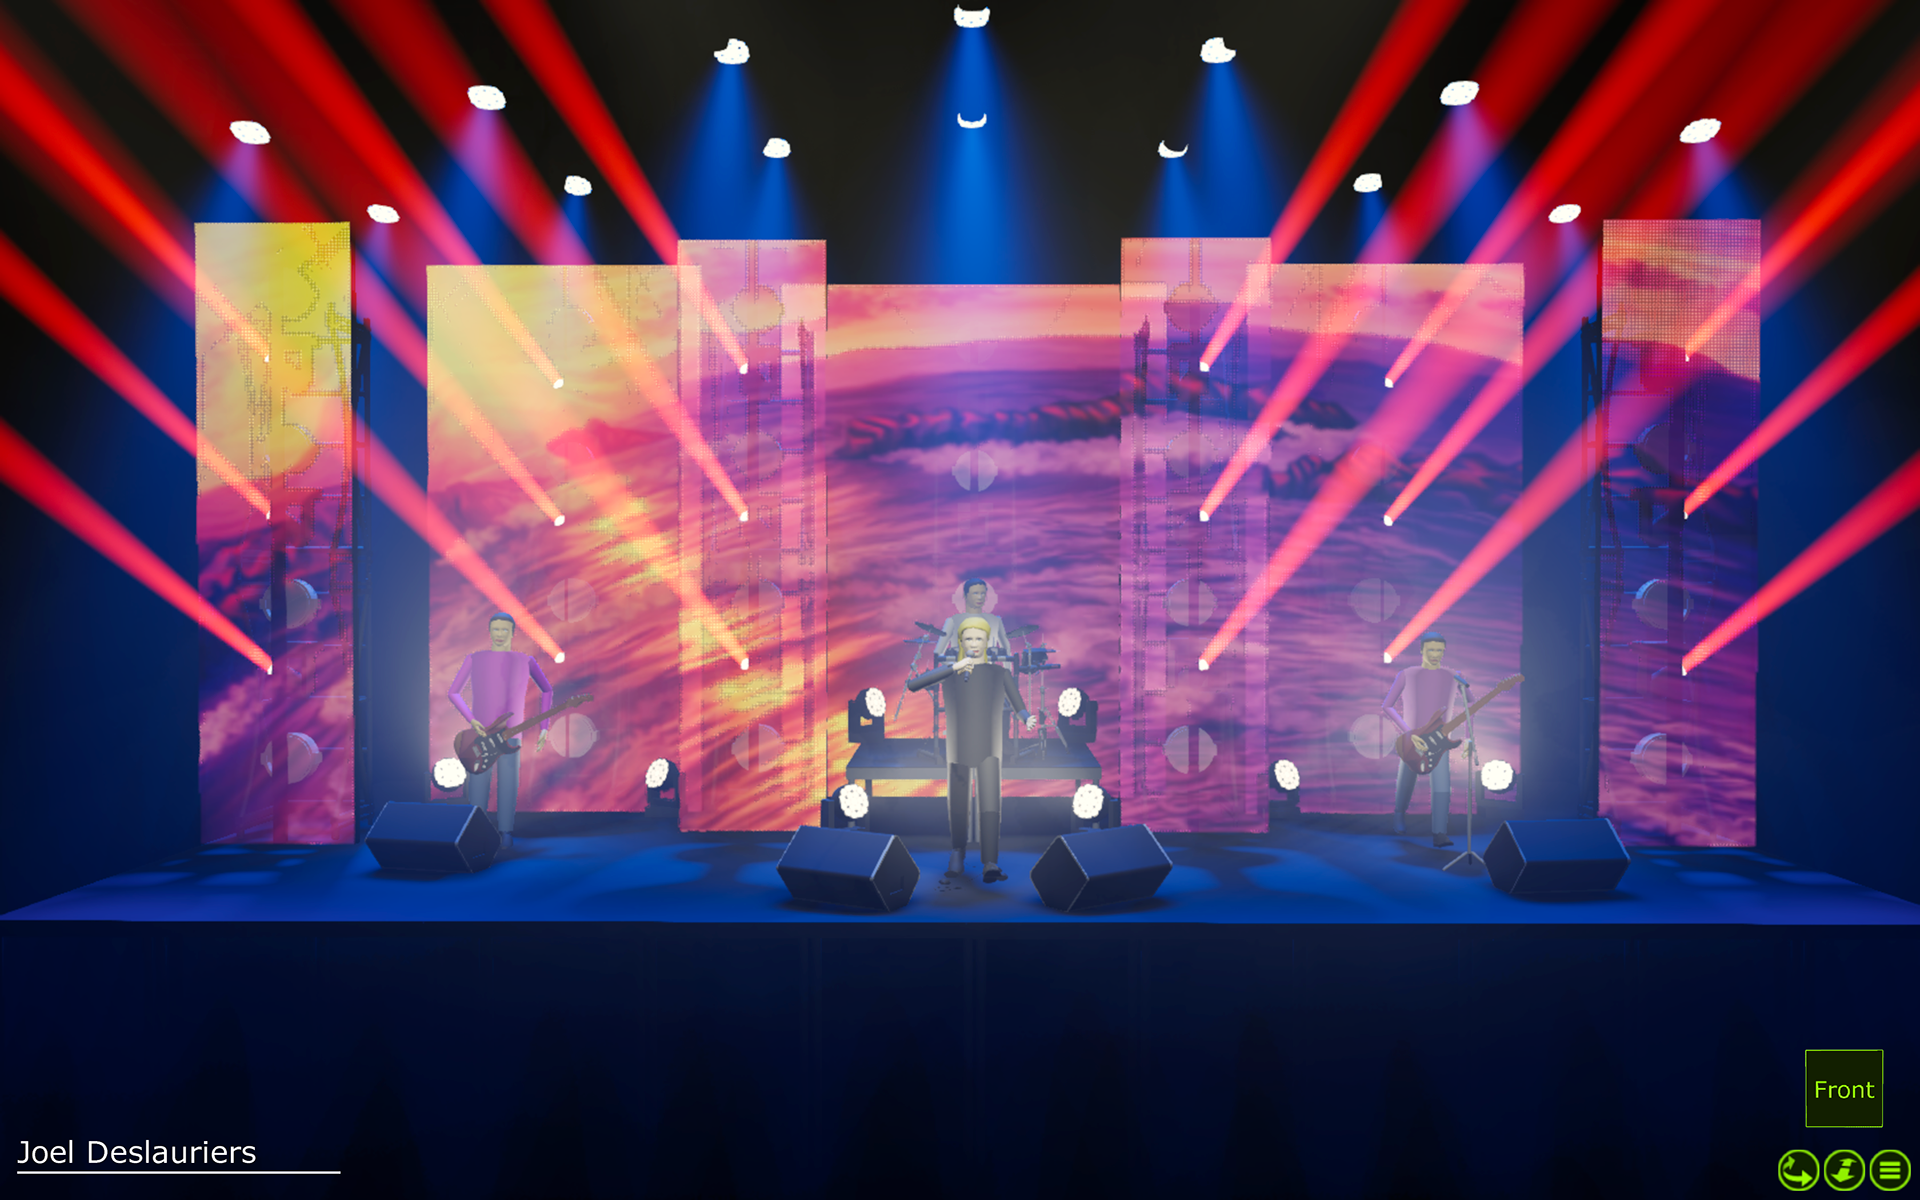 Show, stage, lighting, event designers in Ottawa, Toronto, Montreal, Quebec City, Calgary, Vancouver, Halifax, Winnipeg, Canada